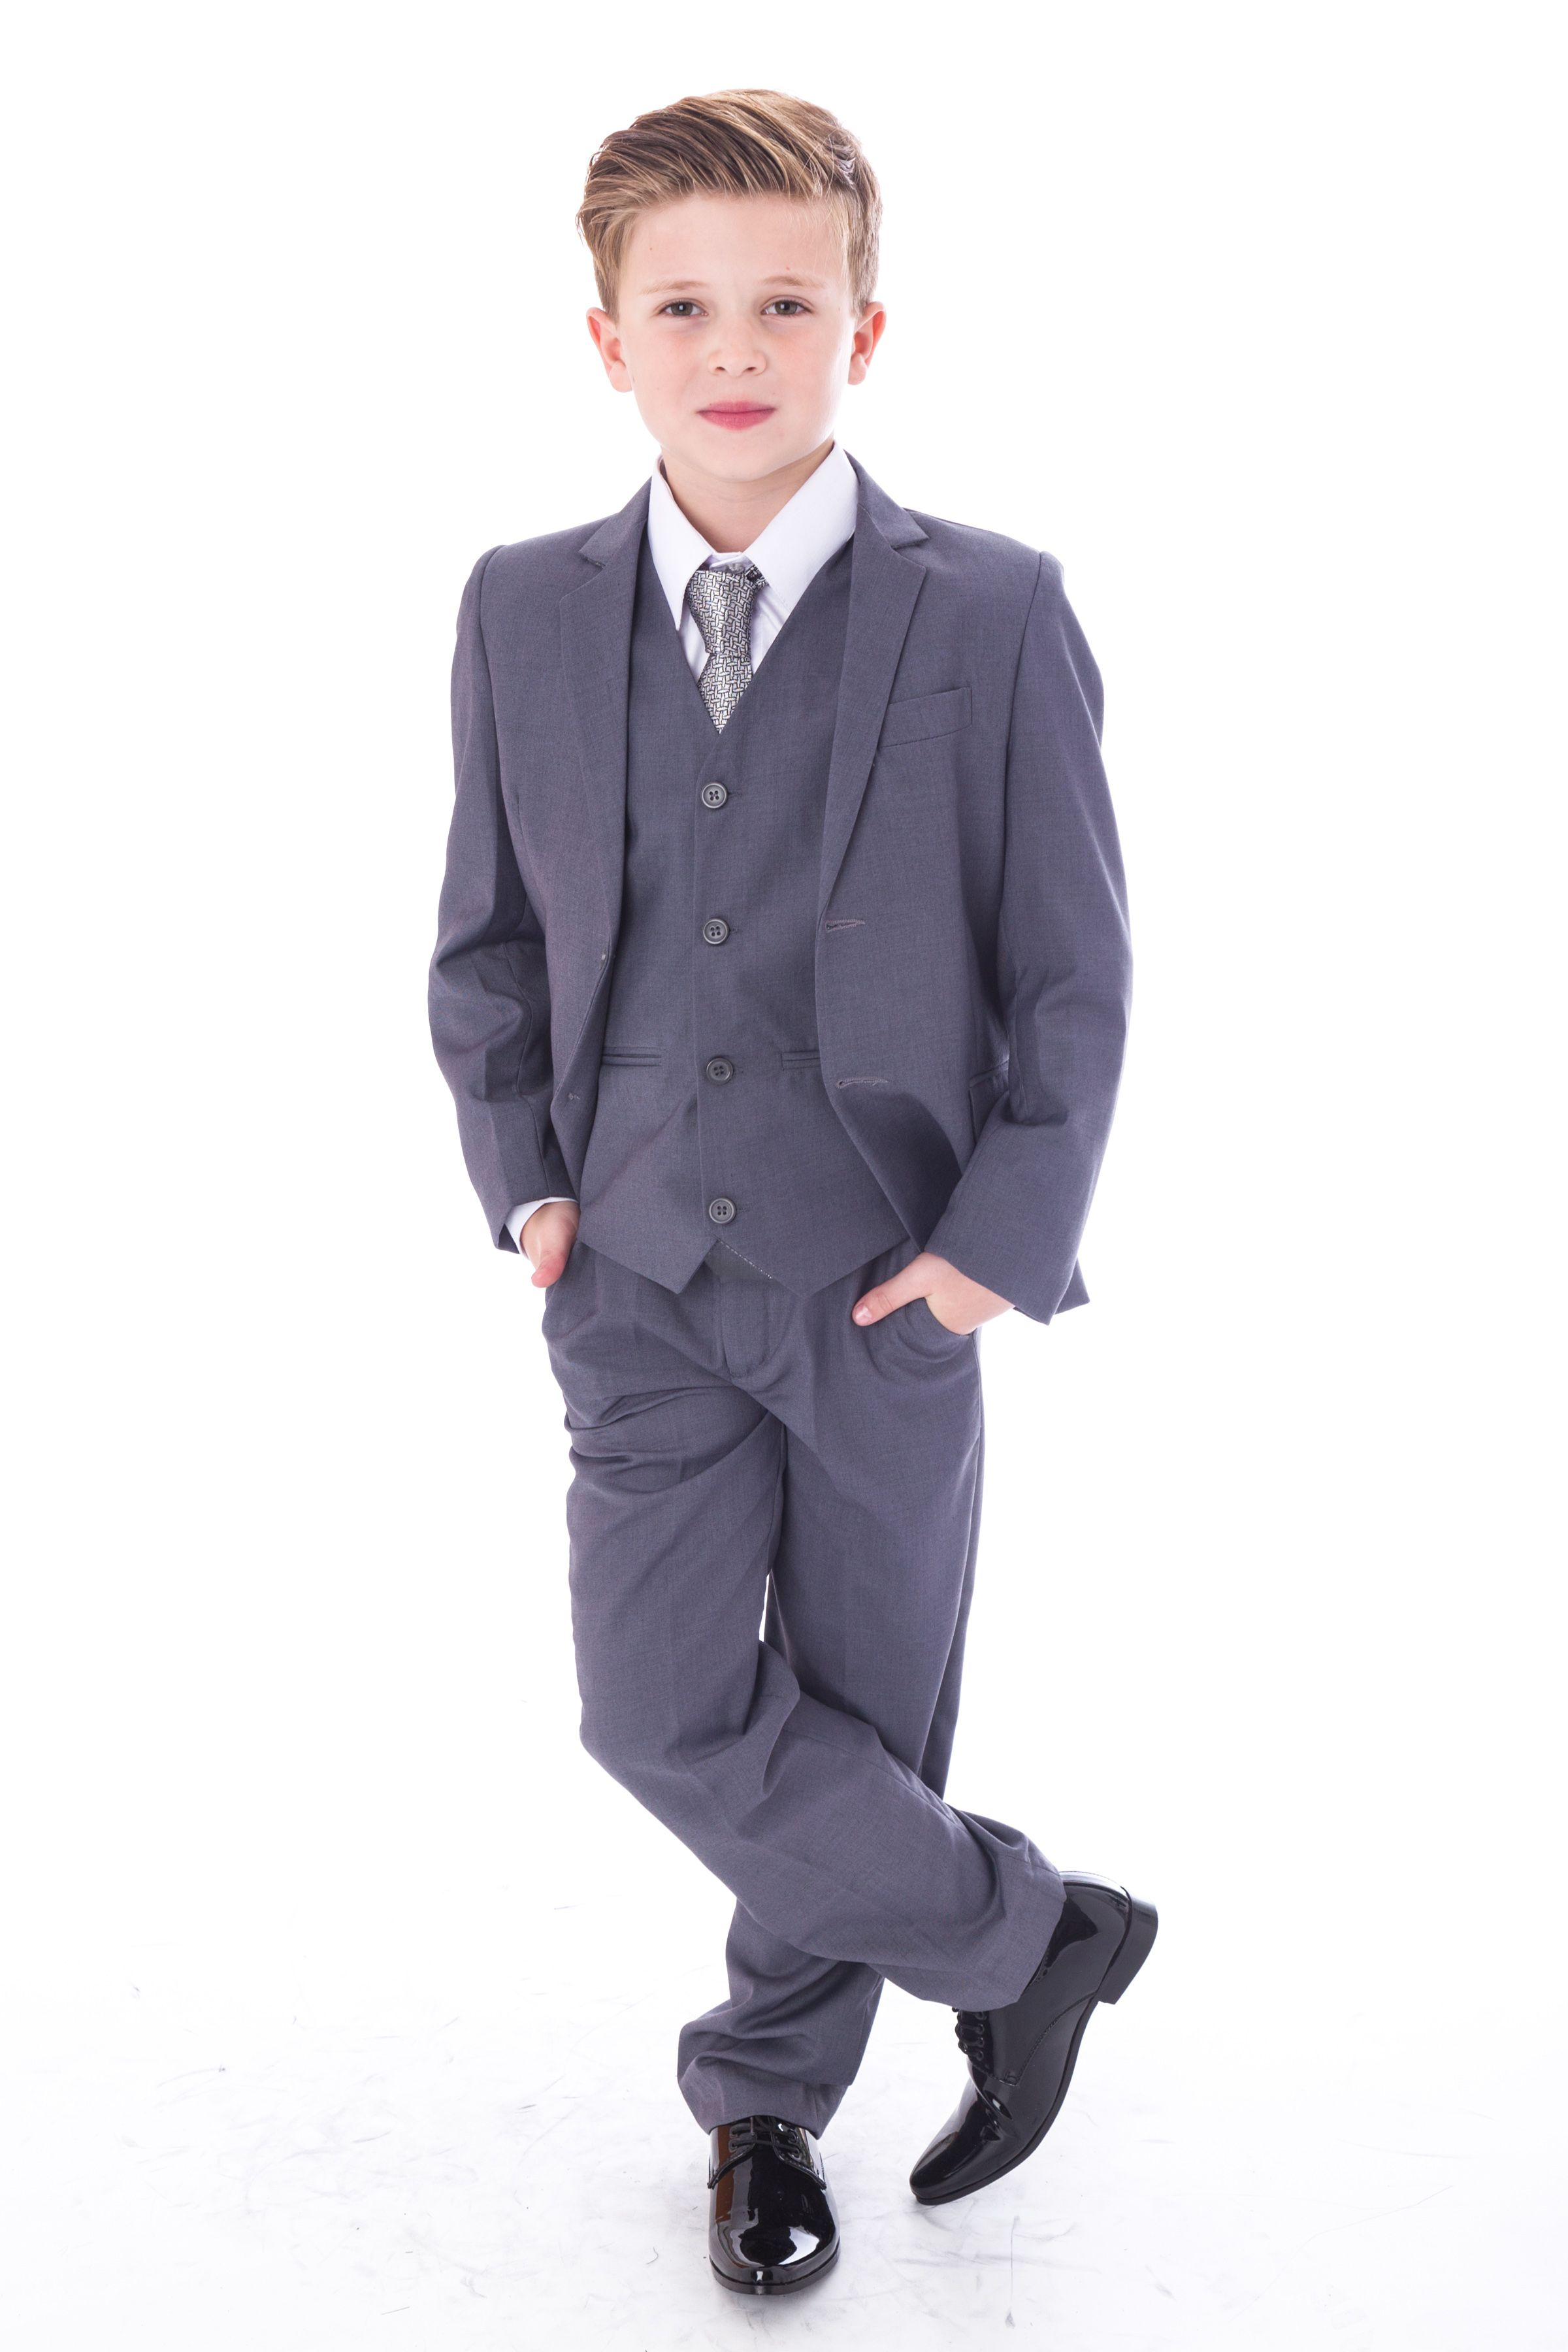 Pin by occasionswearforkids on Our Suits | Pinterest | Boys wedding ...